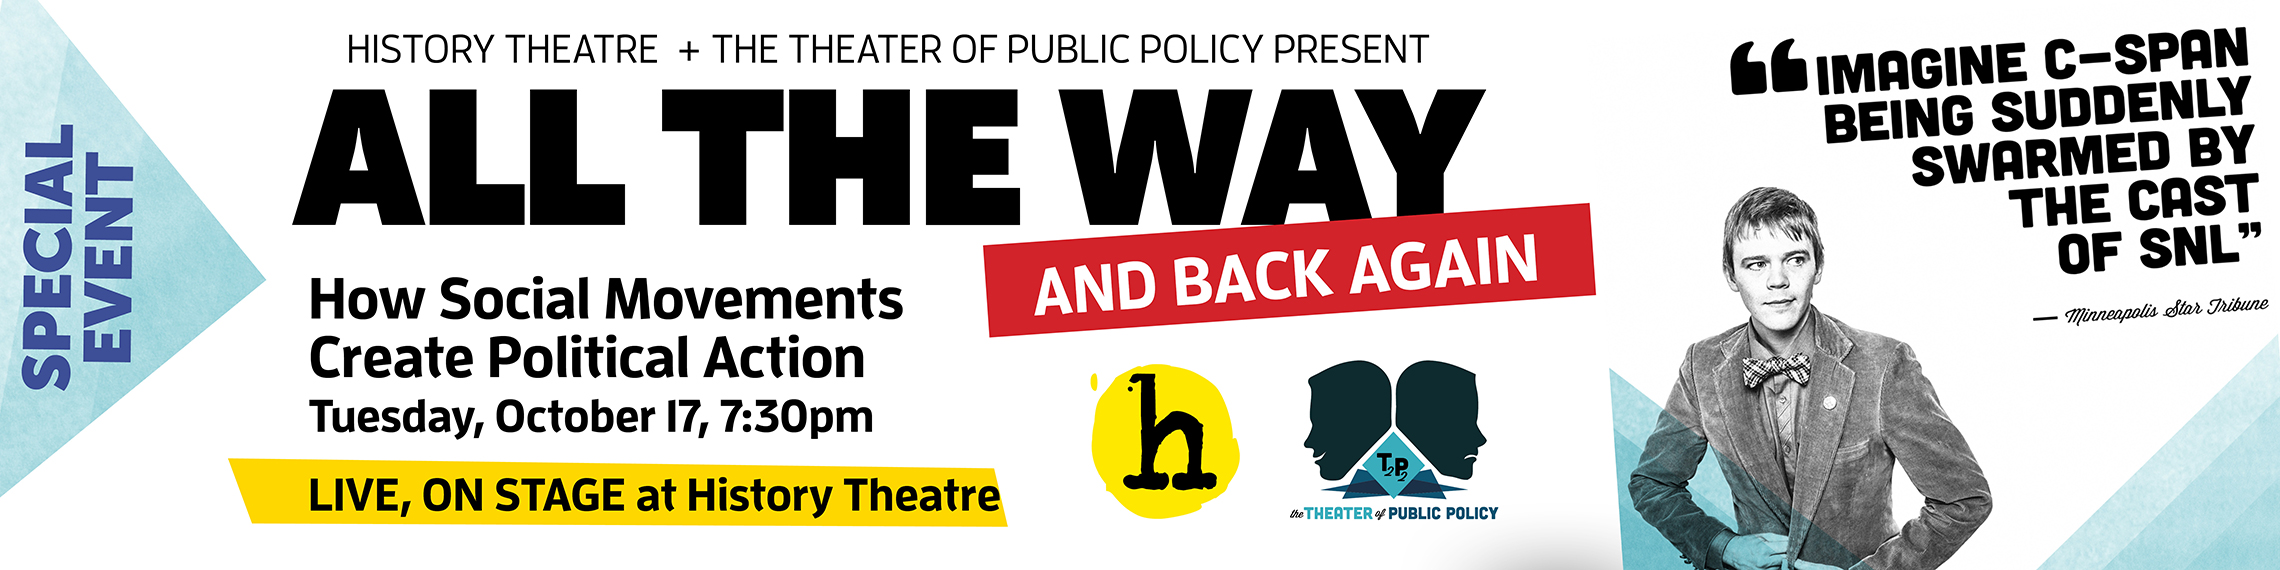 Theater of Public Policy